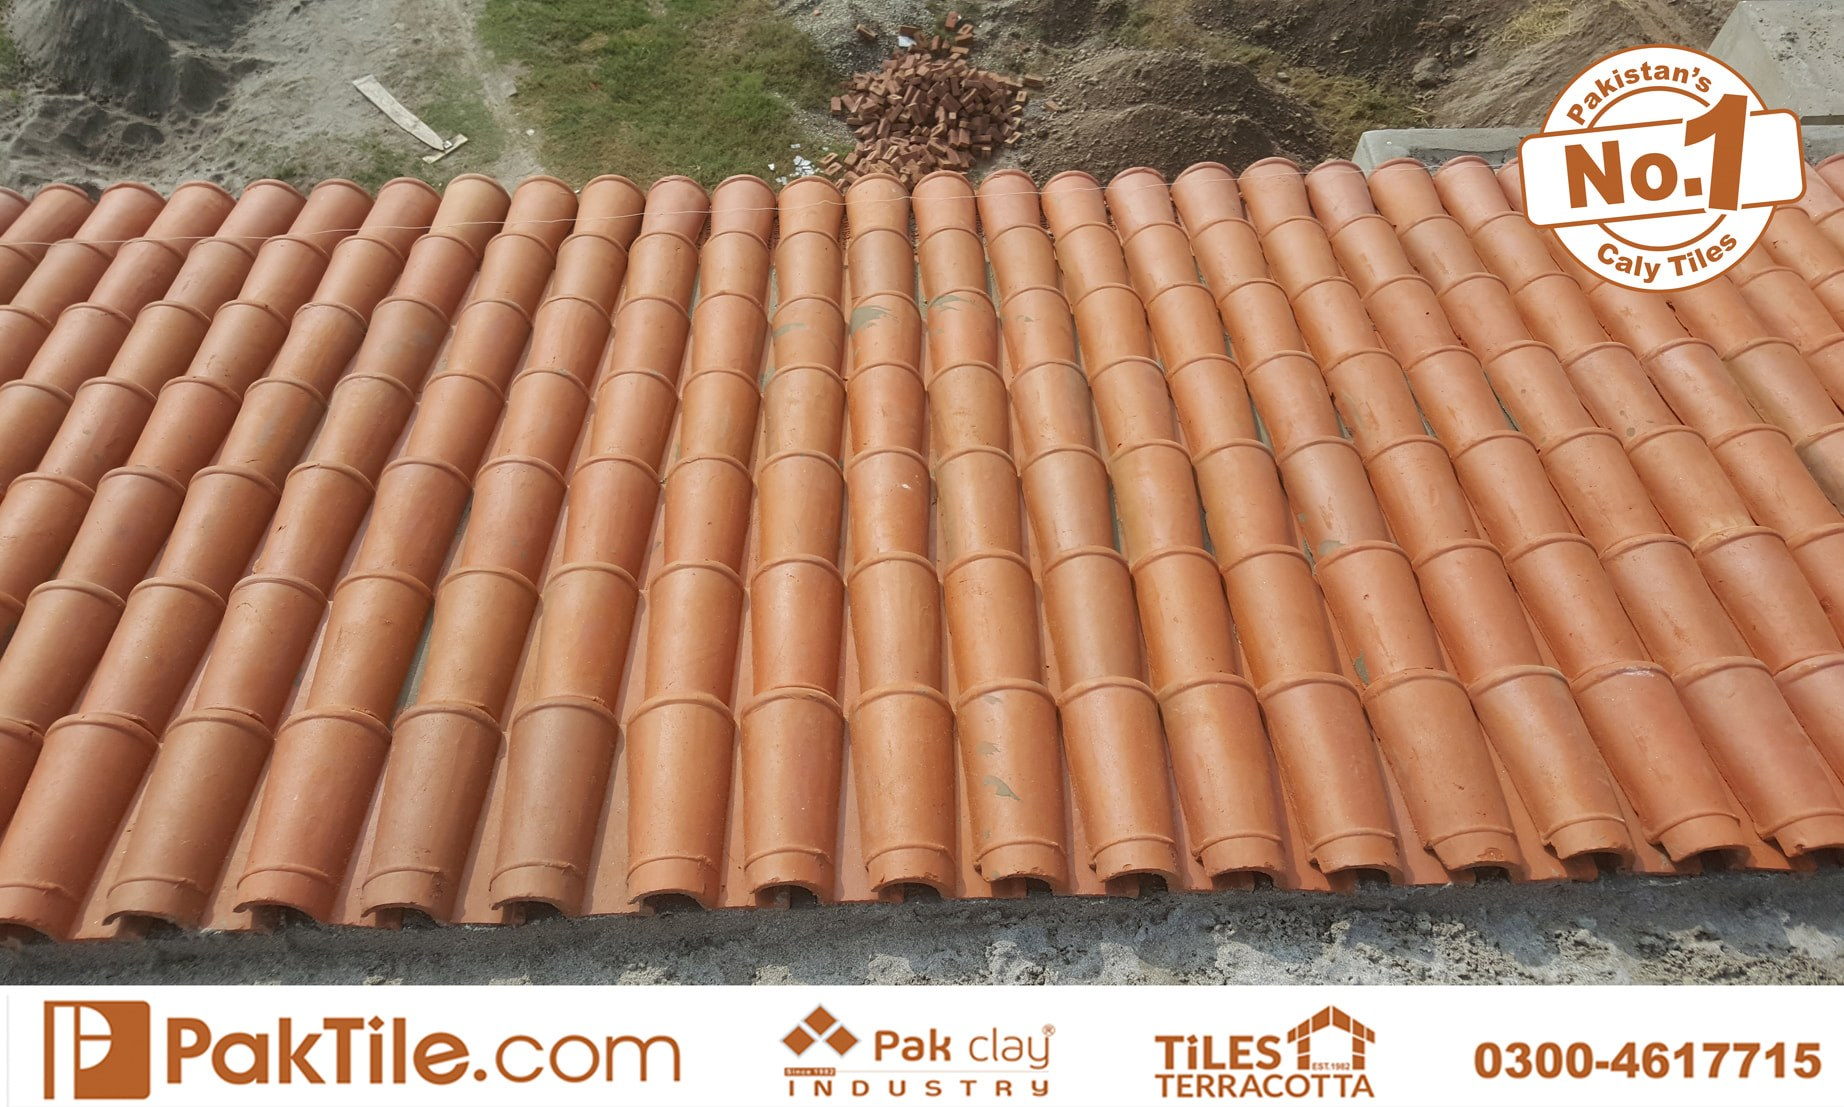 2 Pak Clay Terracotta Roof Khaprail Tiles in Lahore Images.